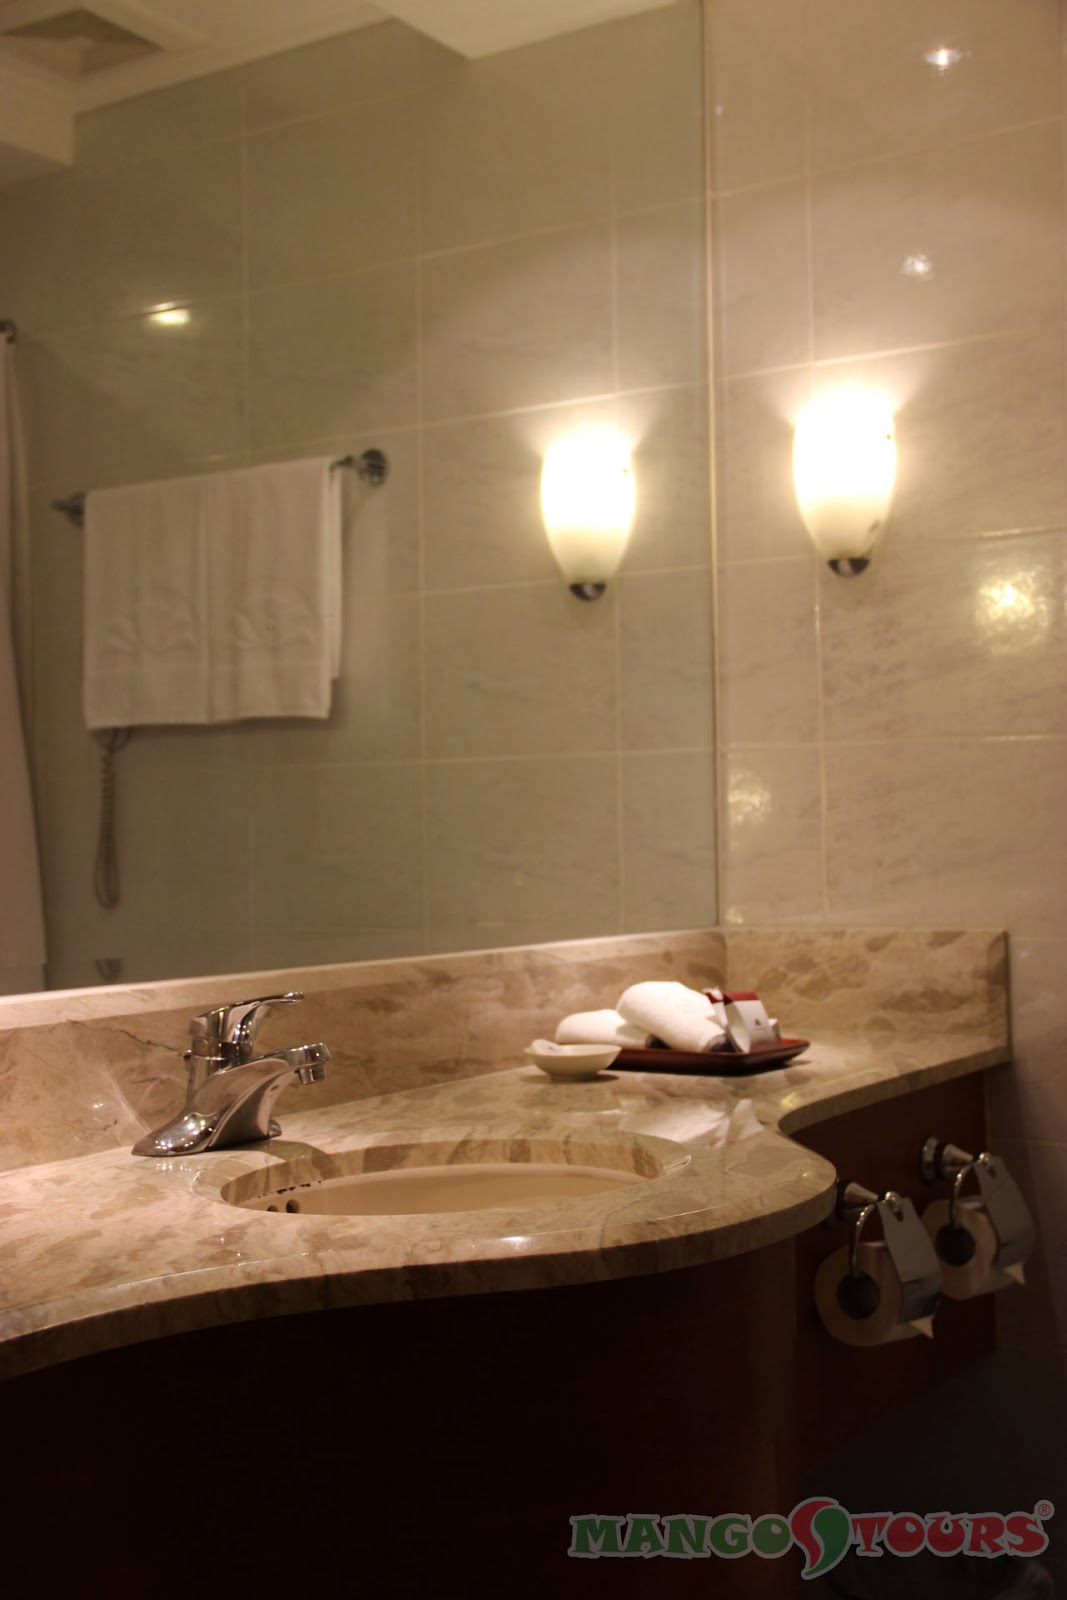 City Garden Hotel Makati room's bathroom